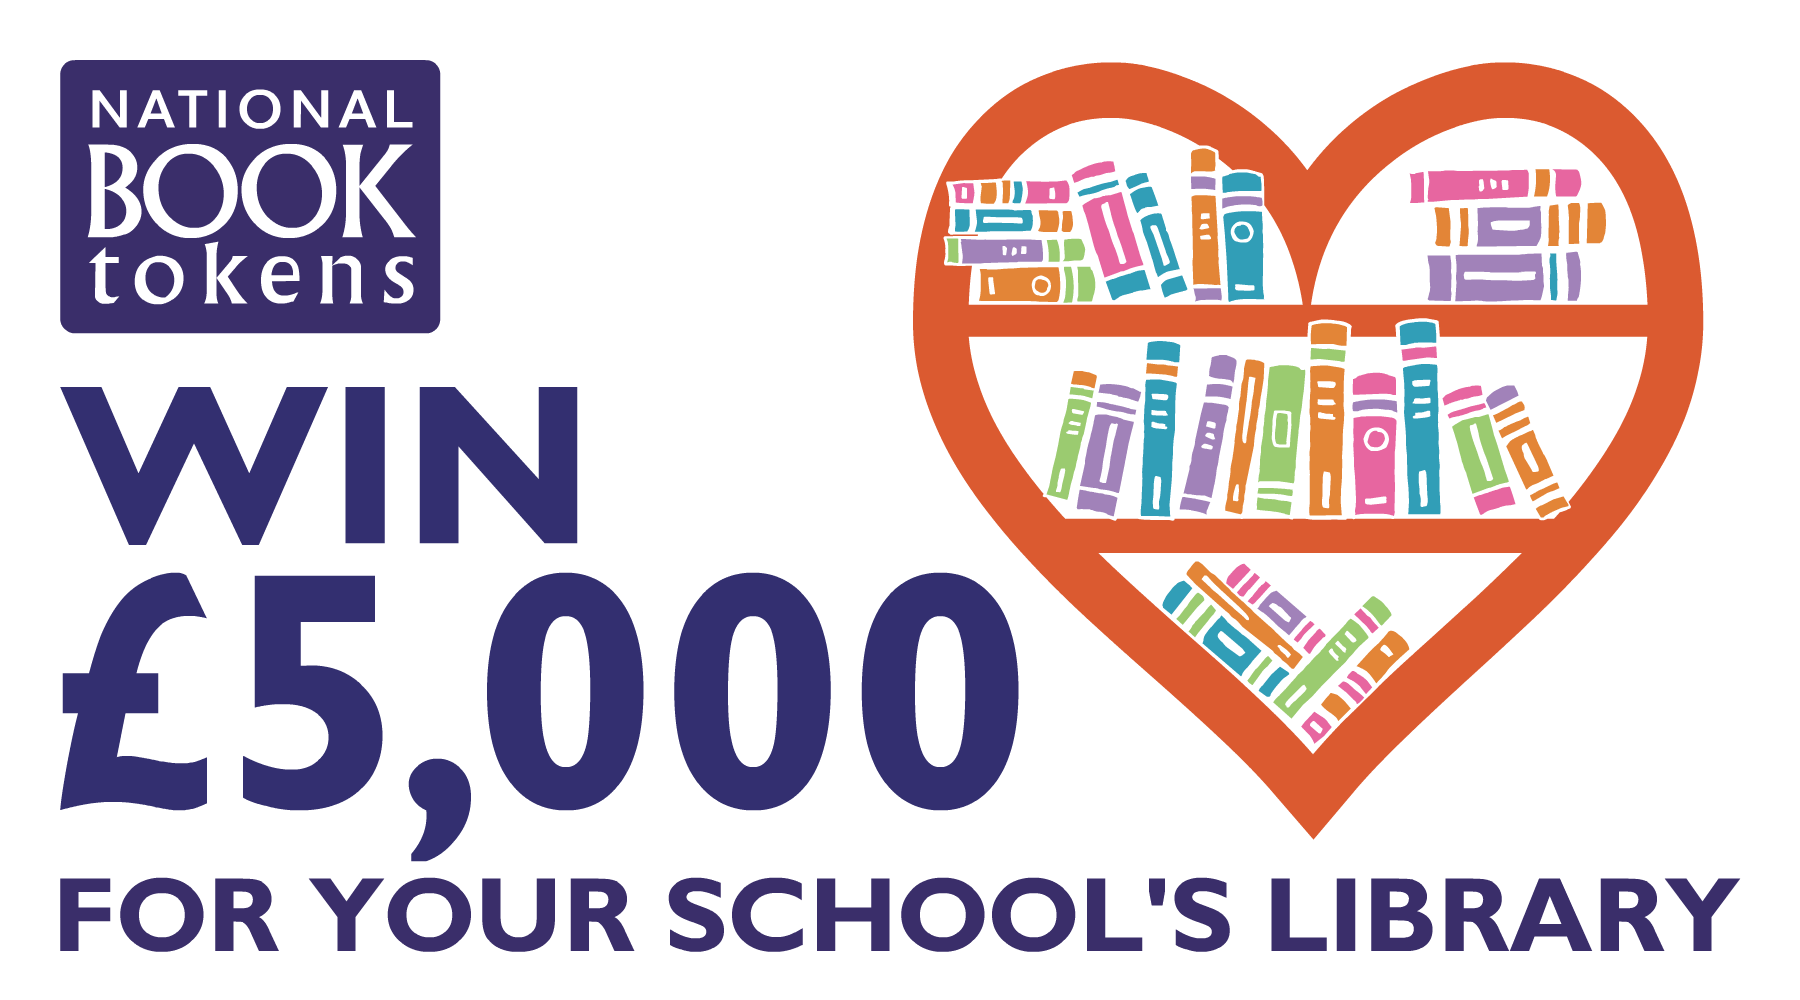 Win £5,000 for your school library with National Book Tokens